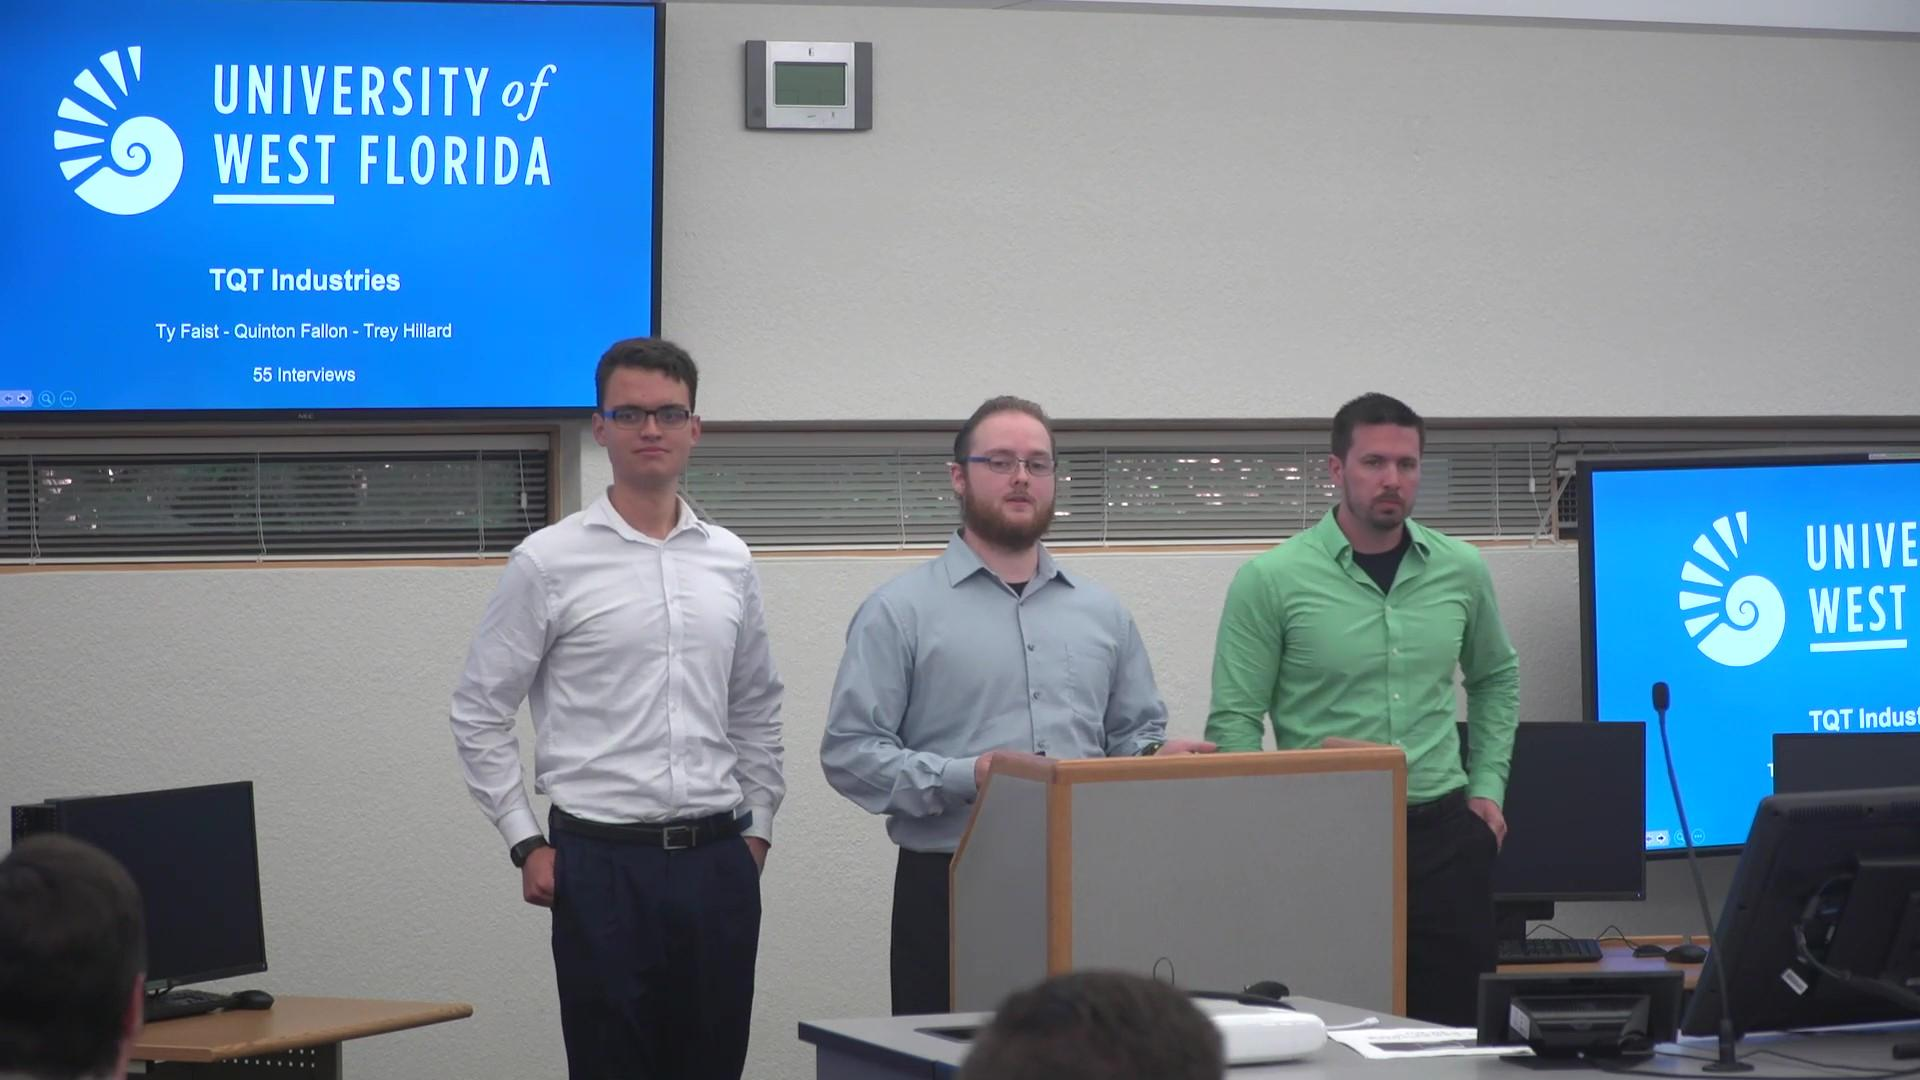 UWF students developing military working dog technology - News - The Destin Log